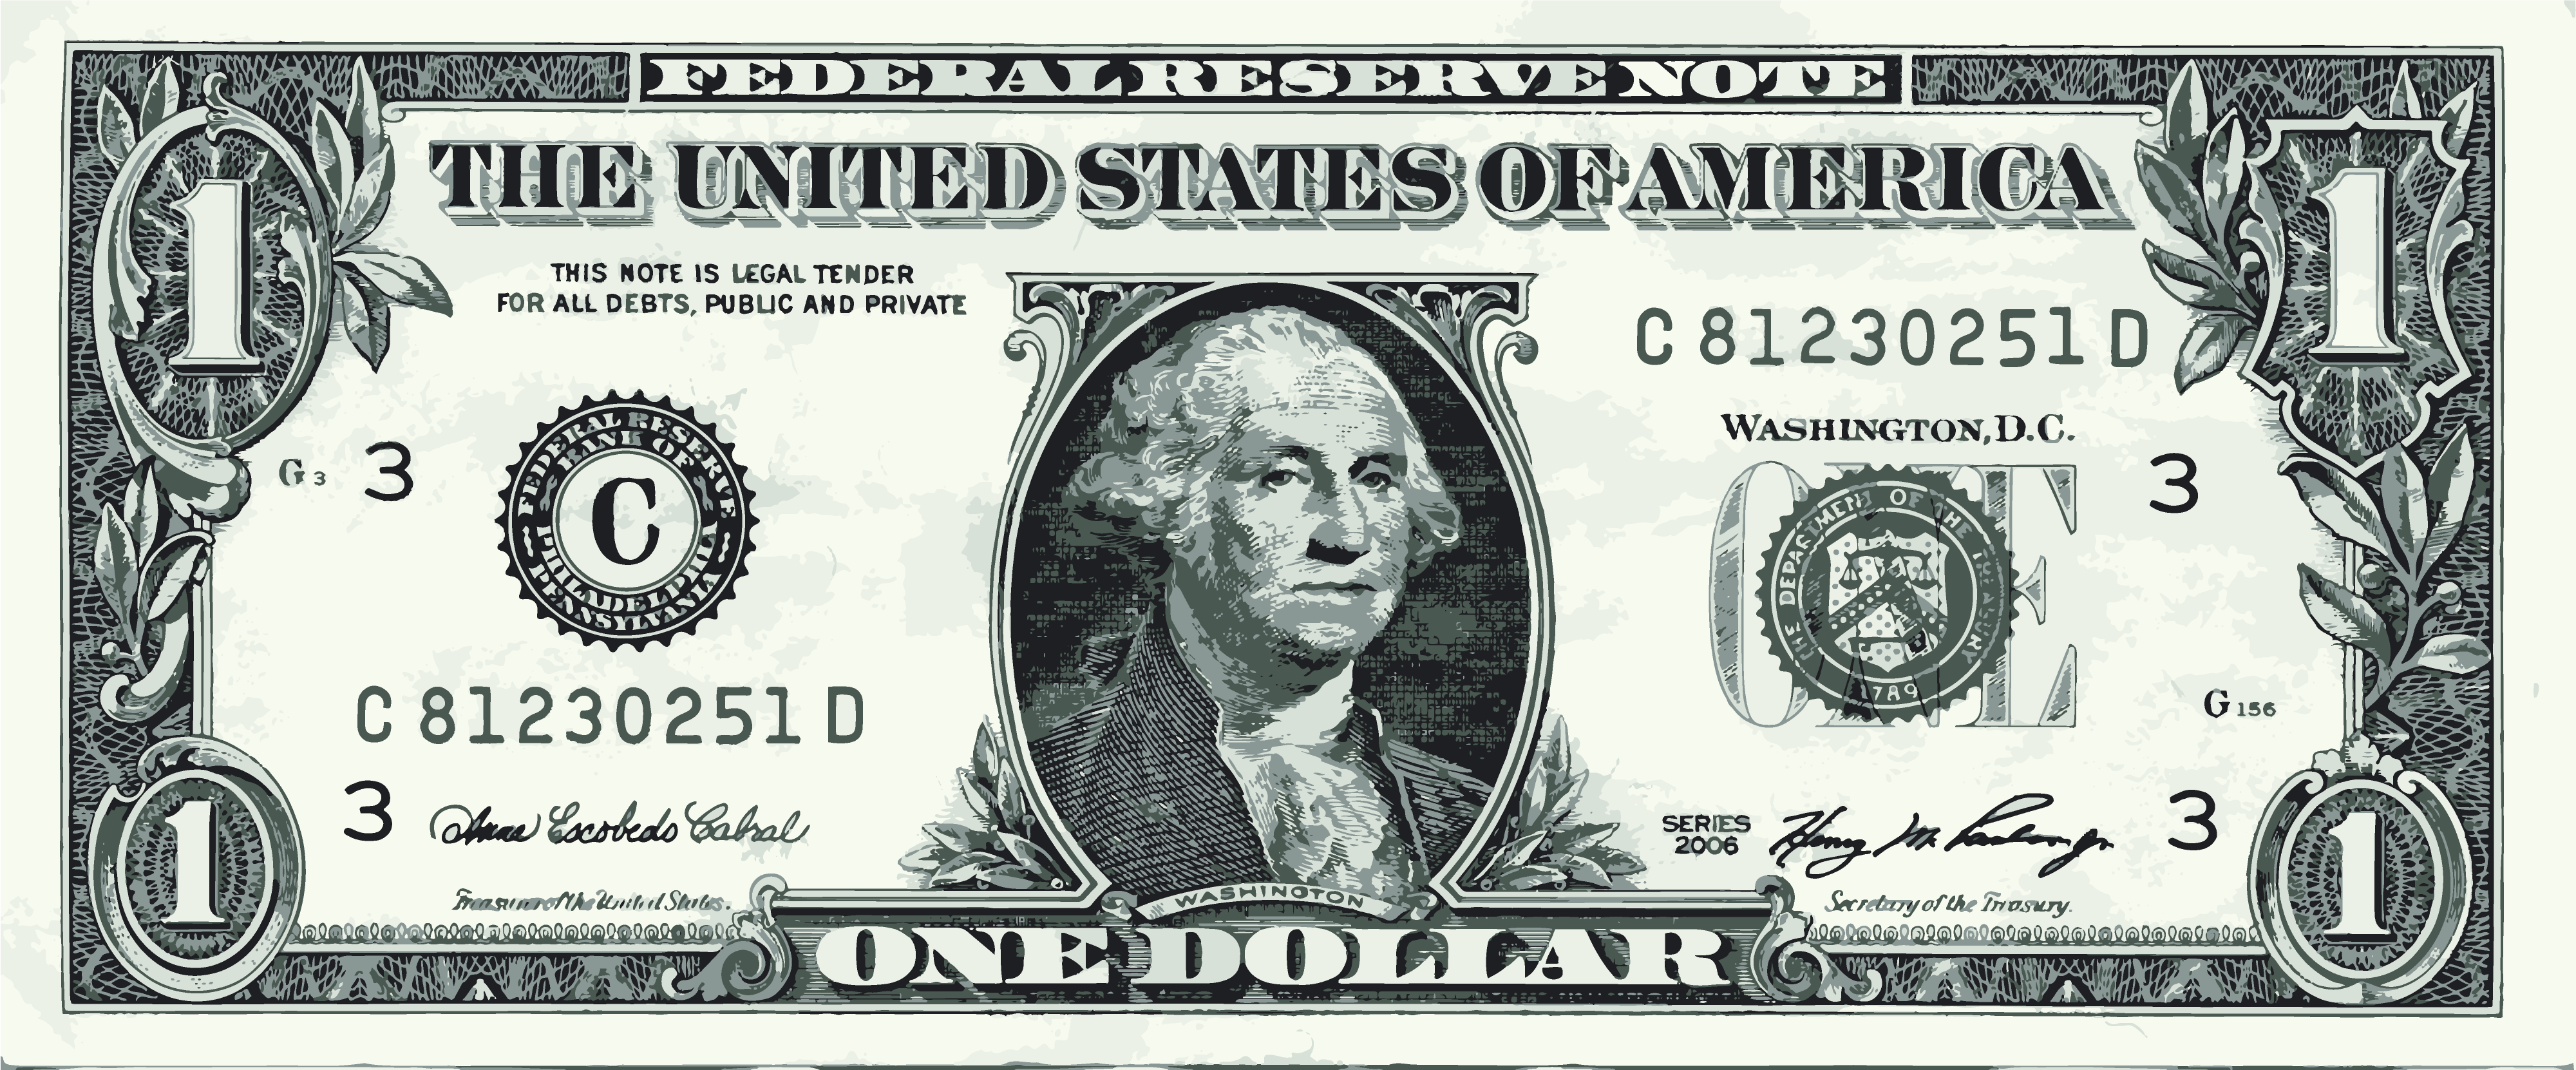 4000x1661 George Washington One Dollar Bill Vector Graphic Art Free Vector